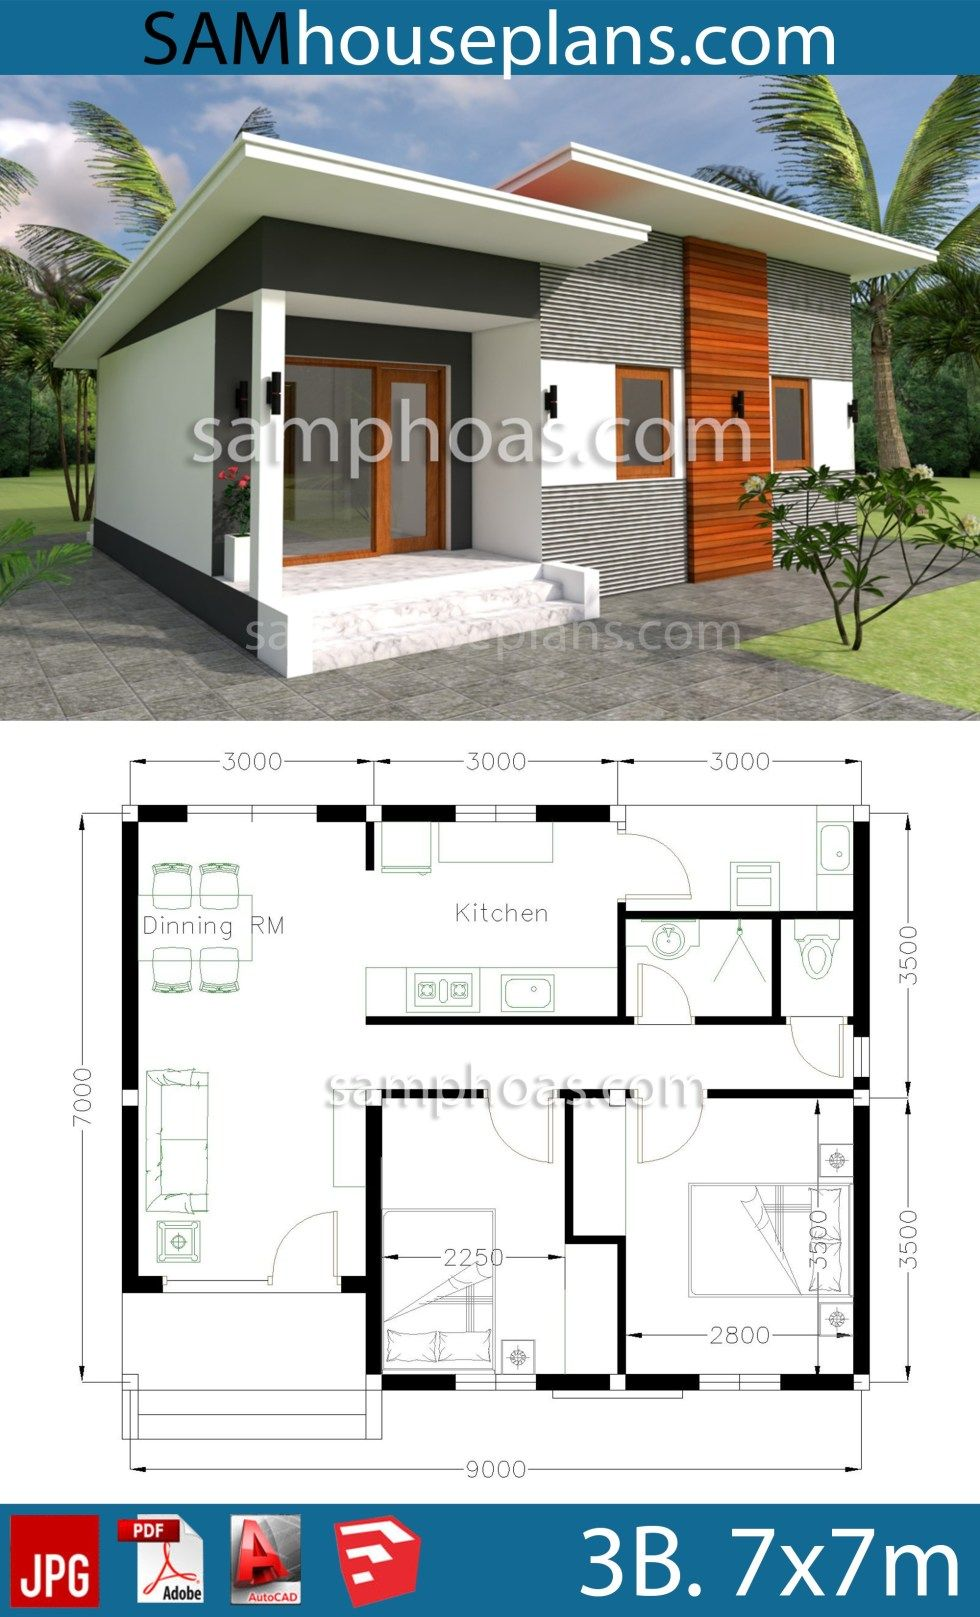 House Plans 9x7m With 2 Bedrooms Sam House Plans House Roof Design House Plans My House Plans